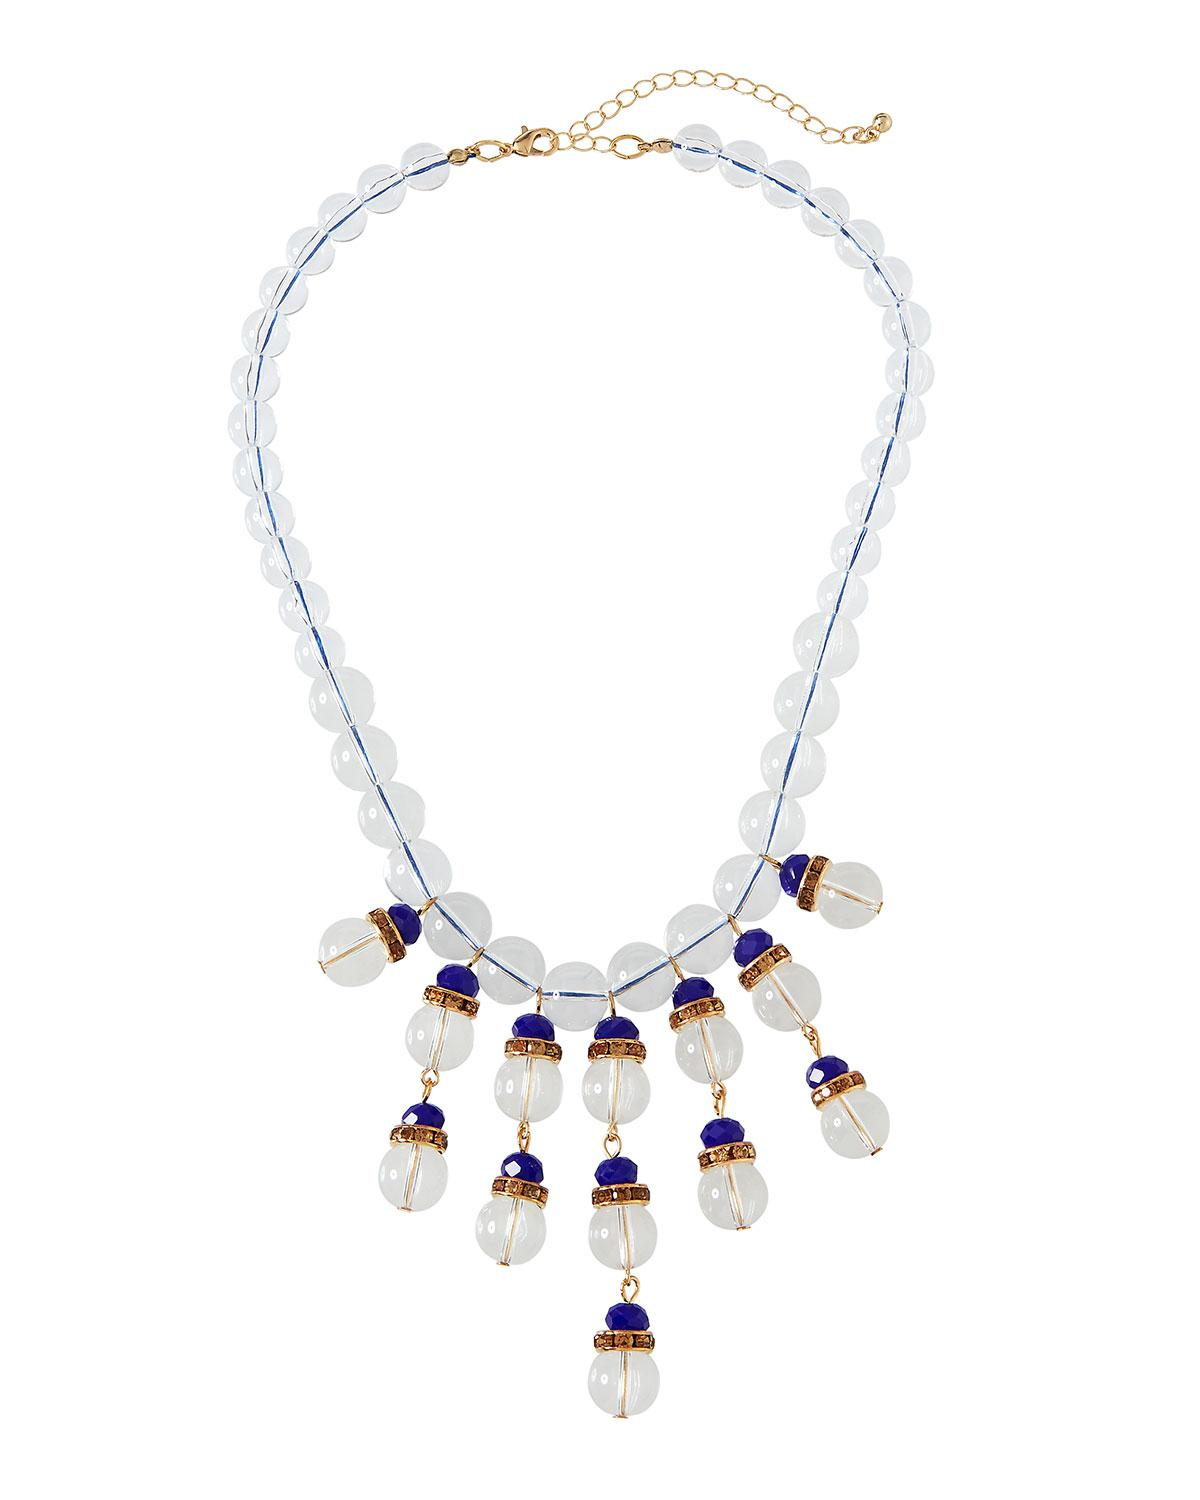 Fragments Lucite Twisted Statement Necklace Fzq2hKiiw